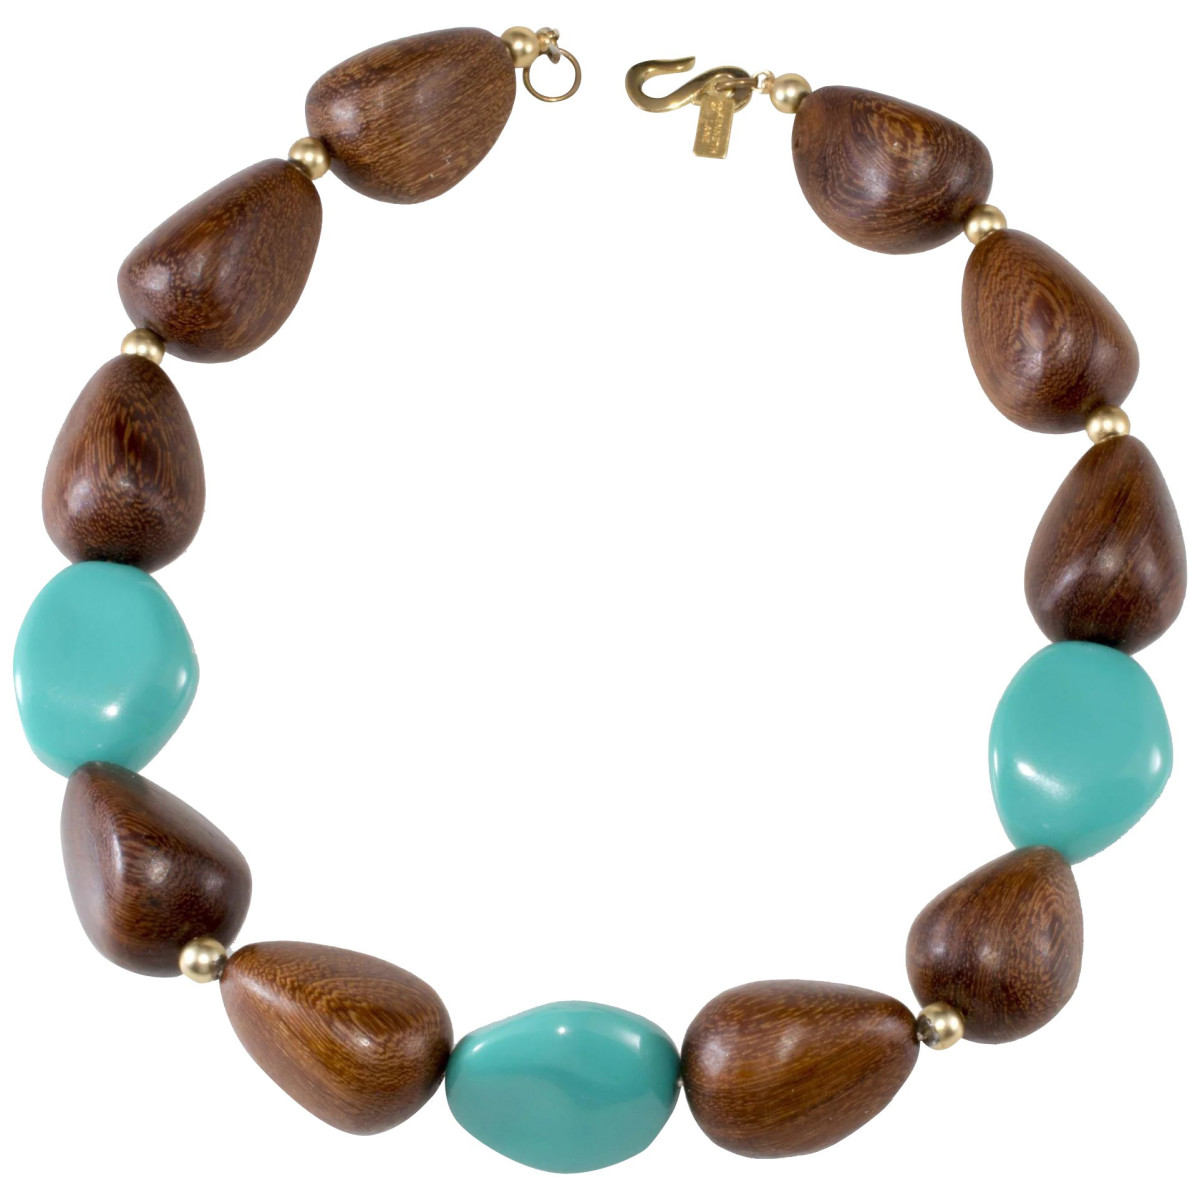 Kenneth Jay Lane resin bead and wood necklace, early-2000s.